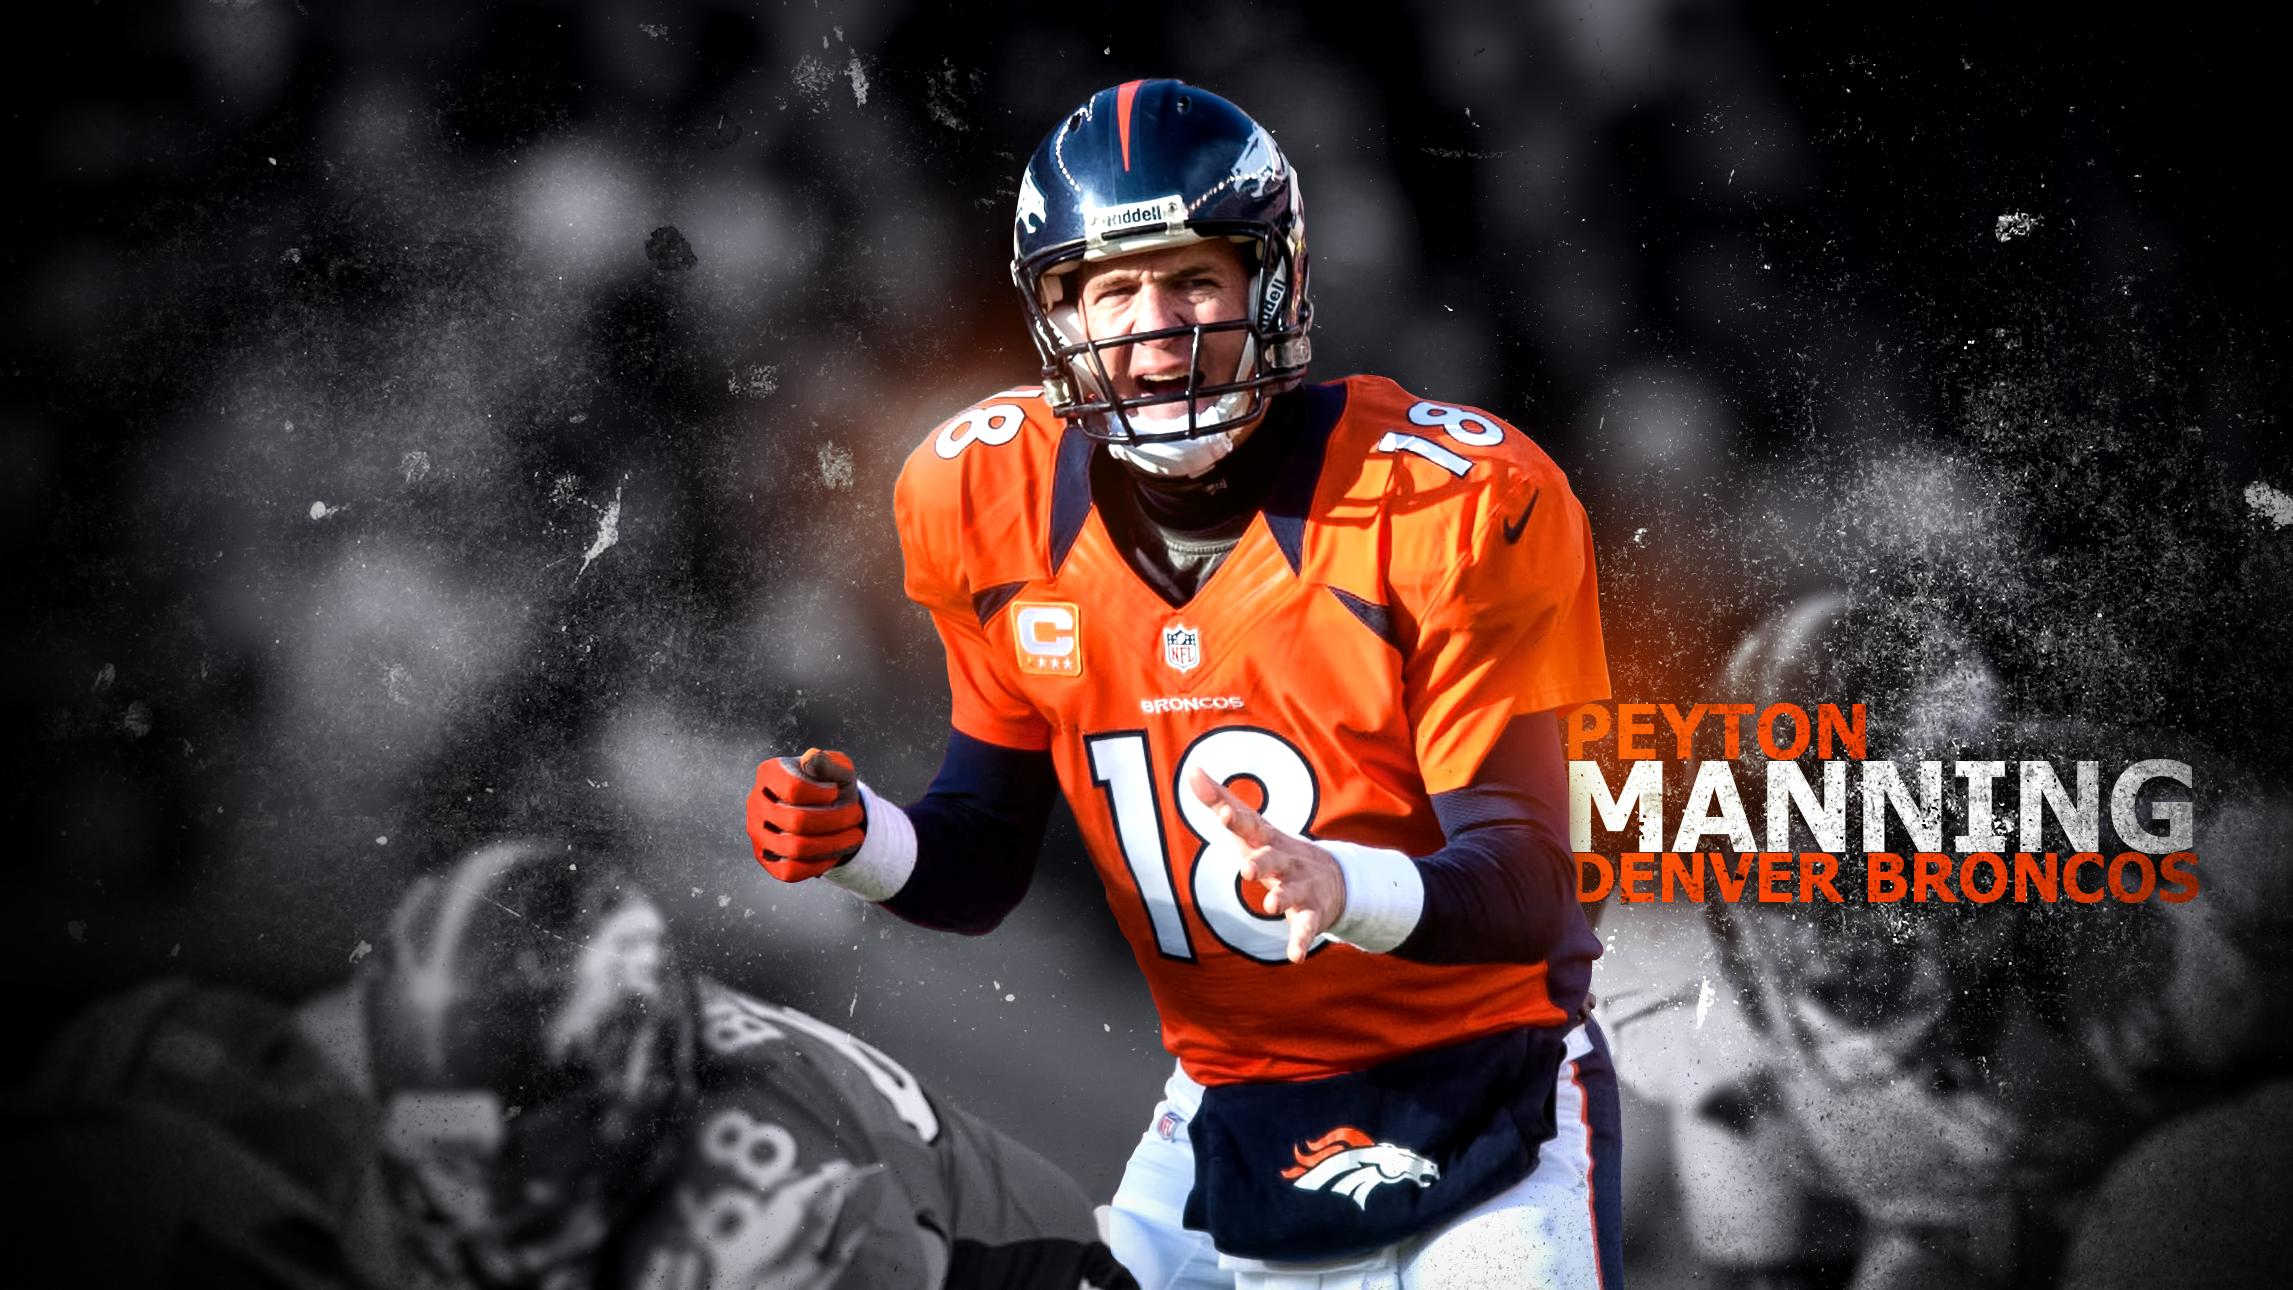 Denver Broncos Peyton Manning Wallpaper